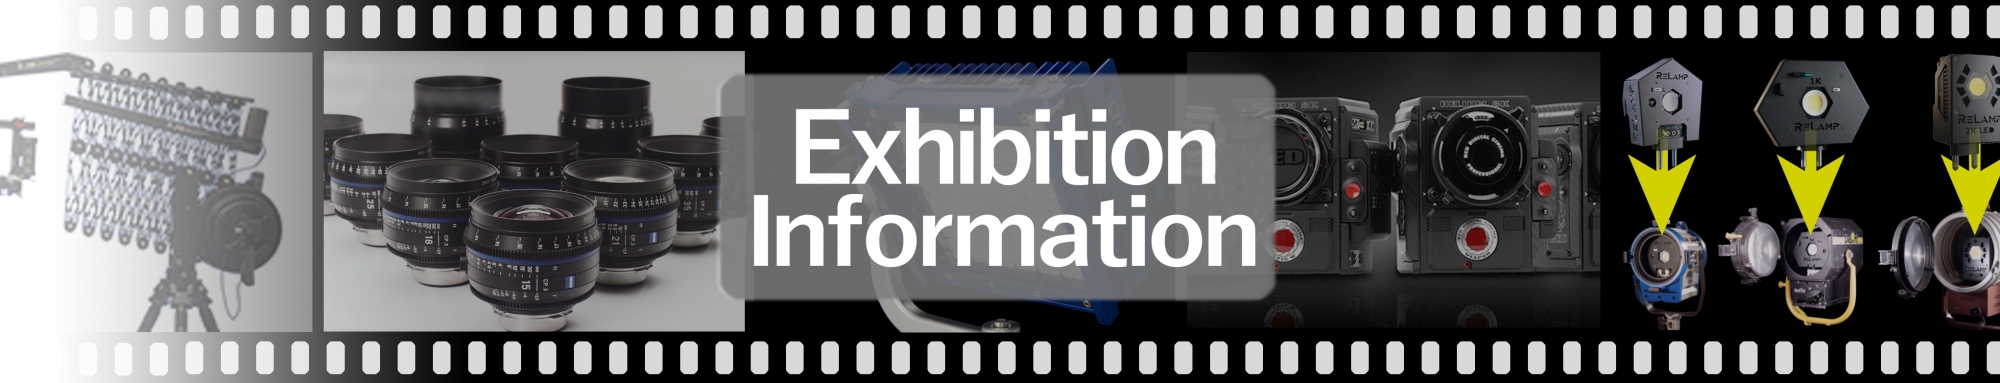 【Kansai Broadcasting Equipment Exhibition (KBEE) 】Start!